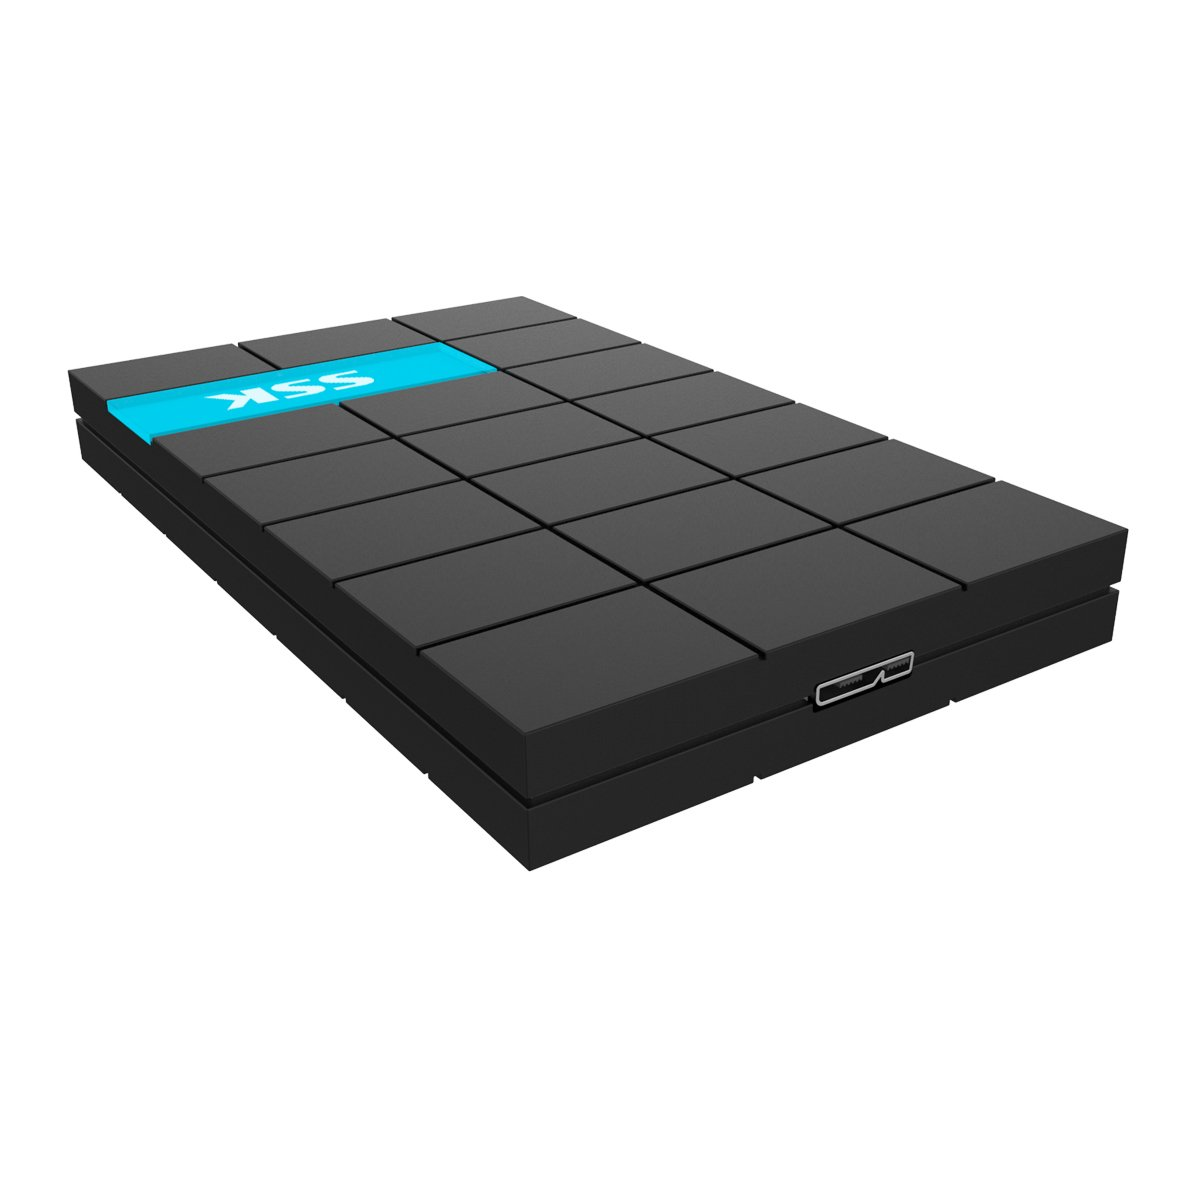 SSK SHE080 Portable USB 3.0 SATA Hard Drive Disk External Enclosure For 9.5mm 7mm 2.5'' HDD And SSD (Black) by SSK (Image #3)